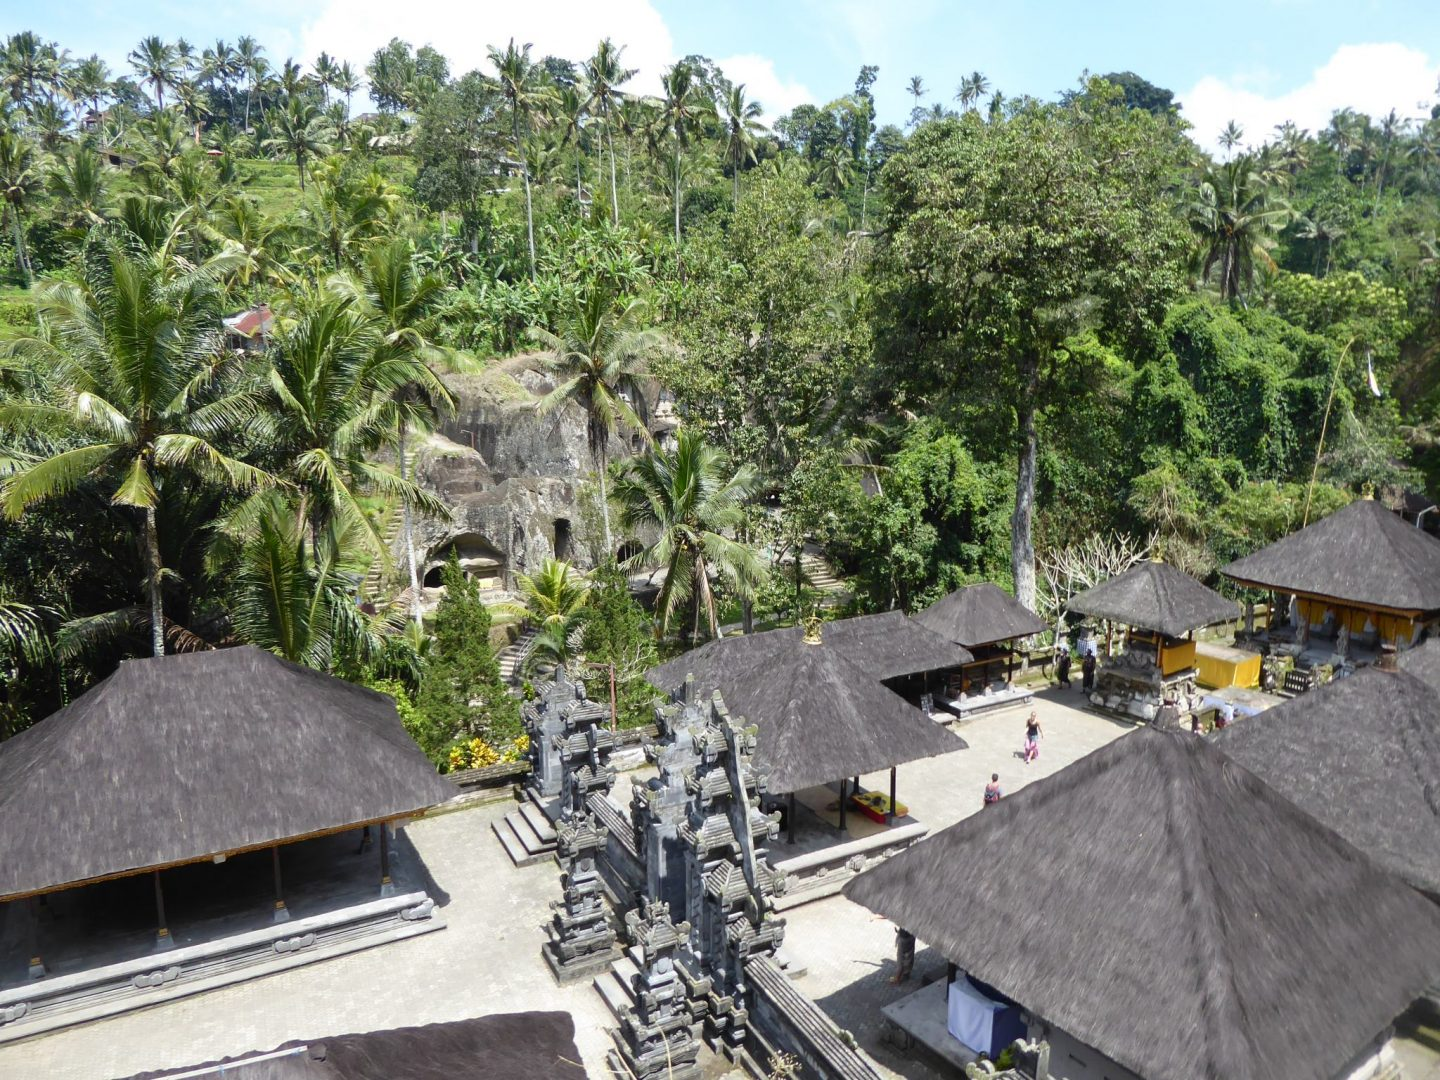 Gunung Kawi is surrounded by green jungle and rice terraces - Balinese Temples